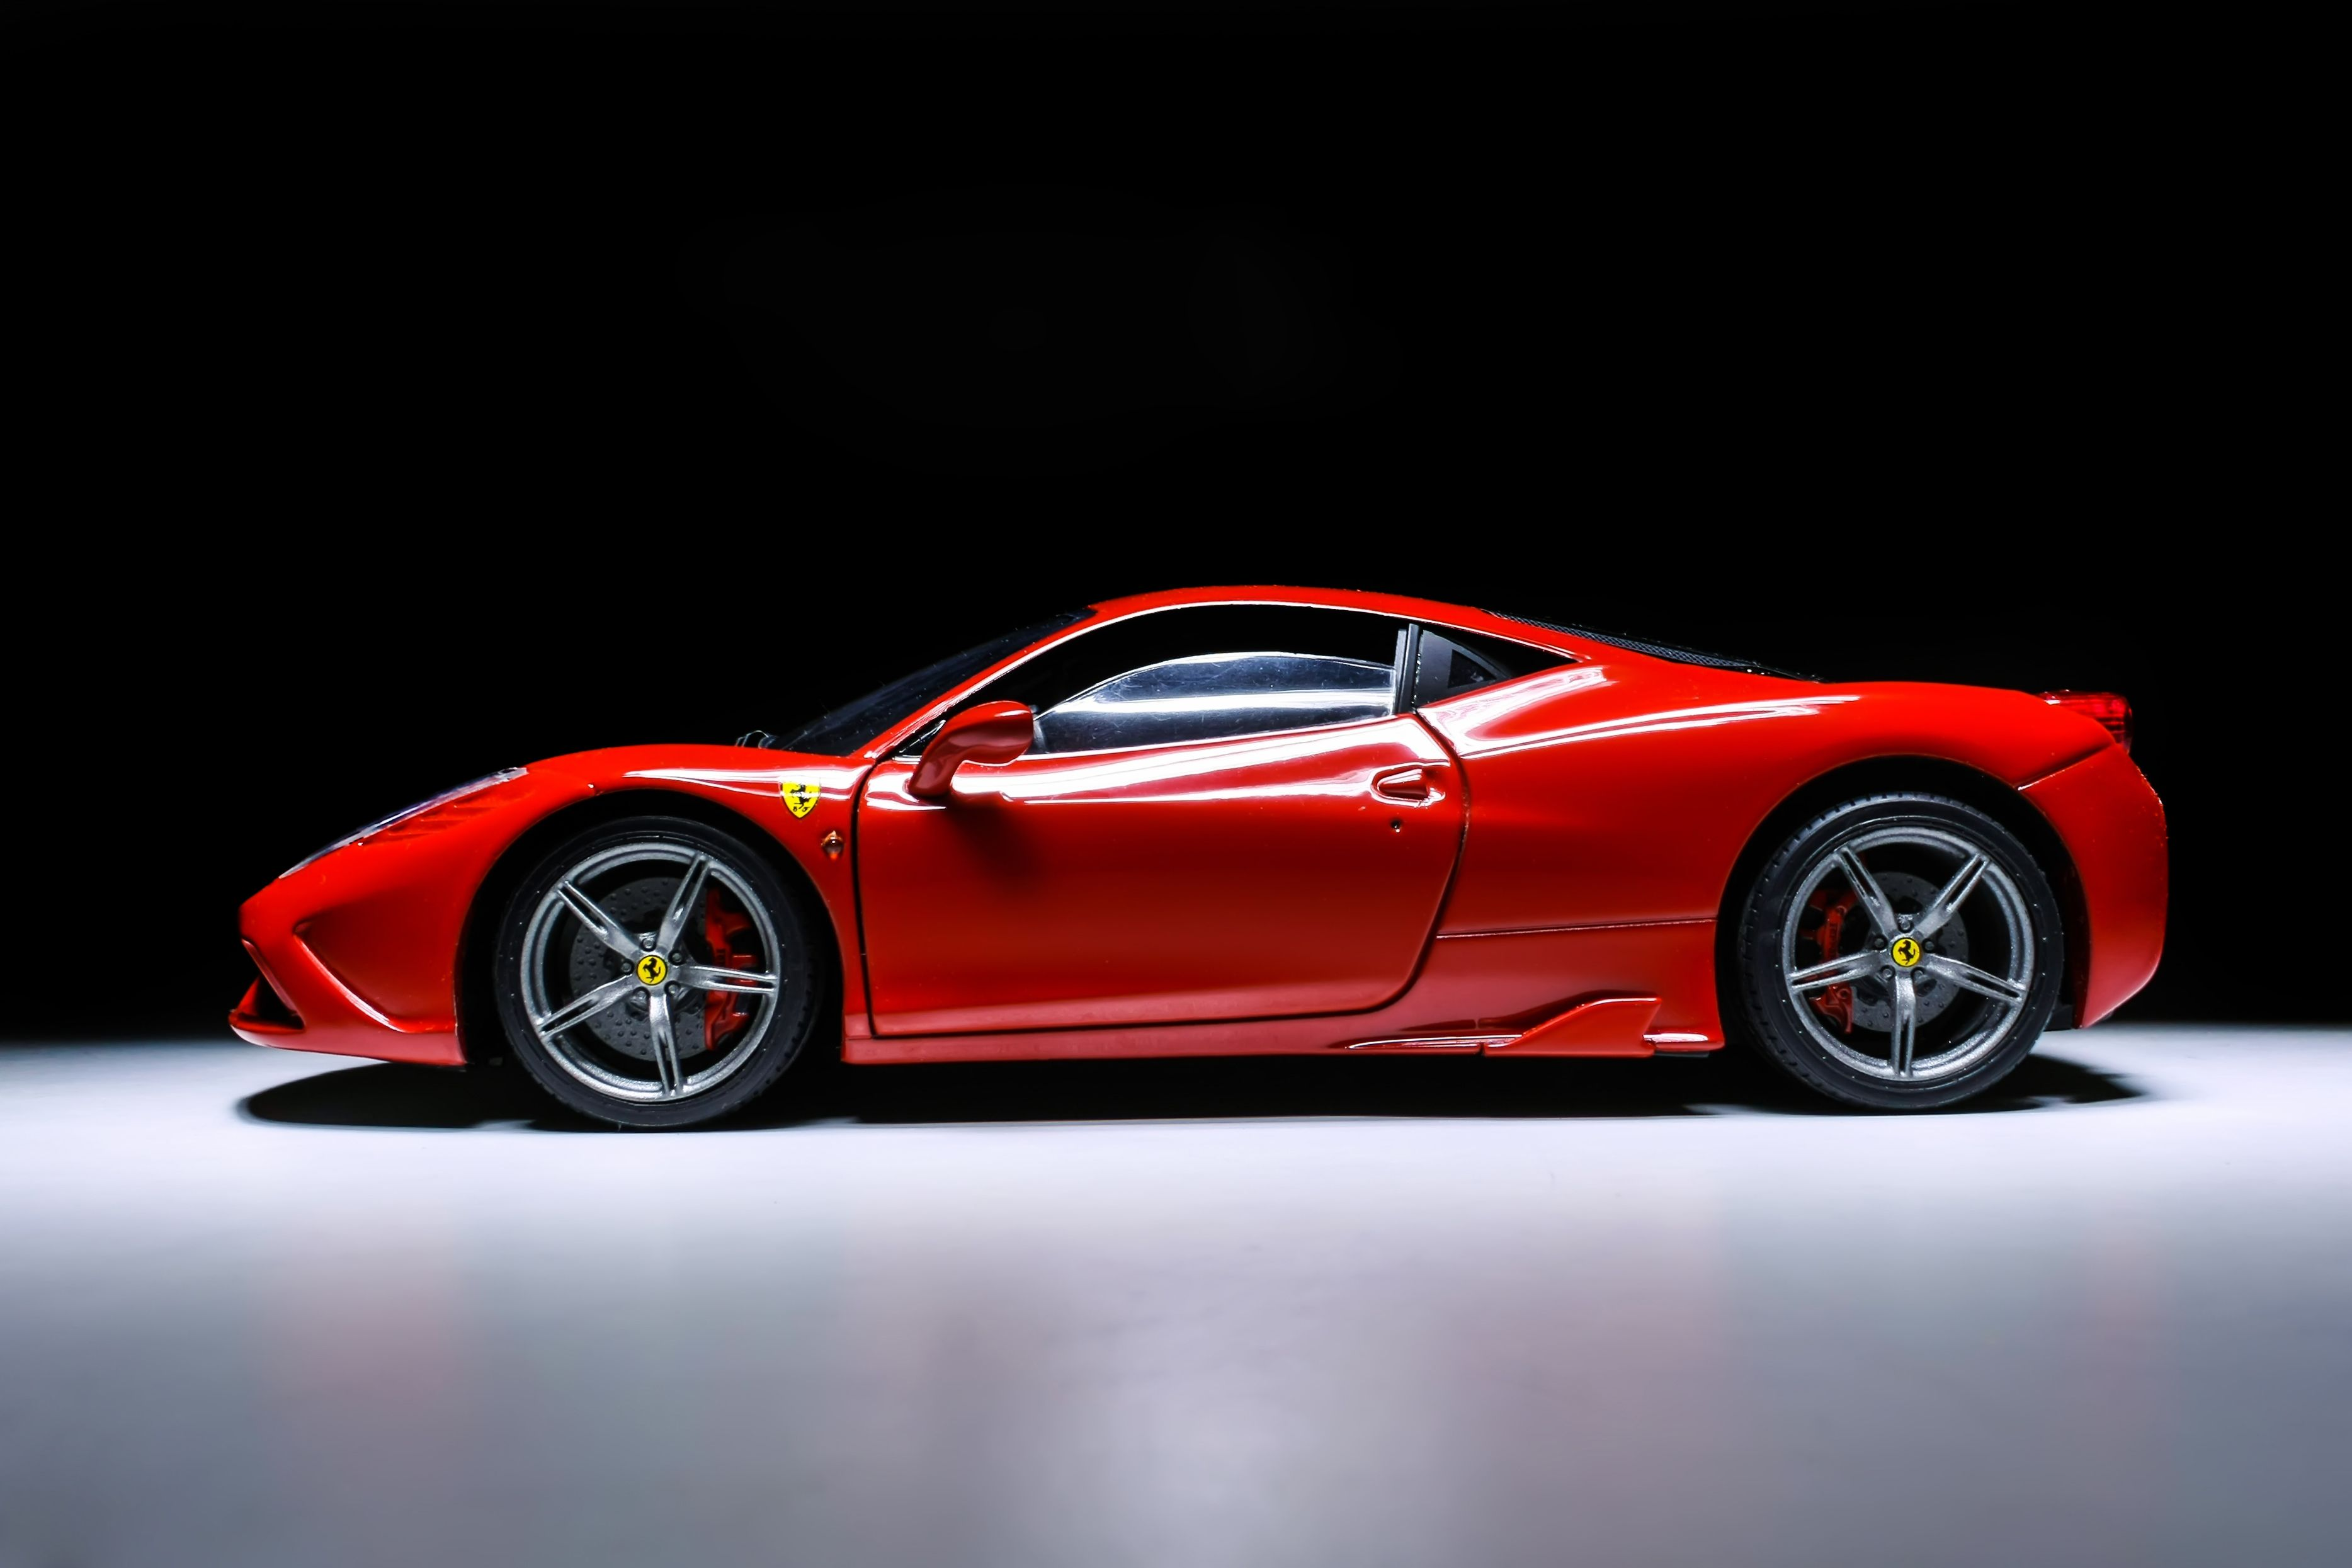 15 Things You Didn't Know About Ferrari